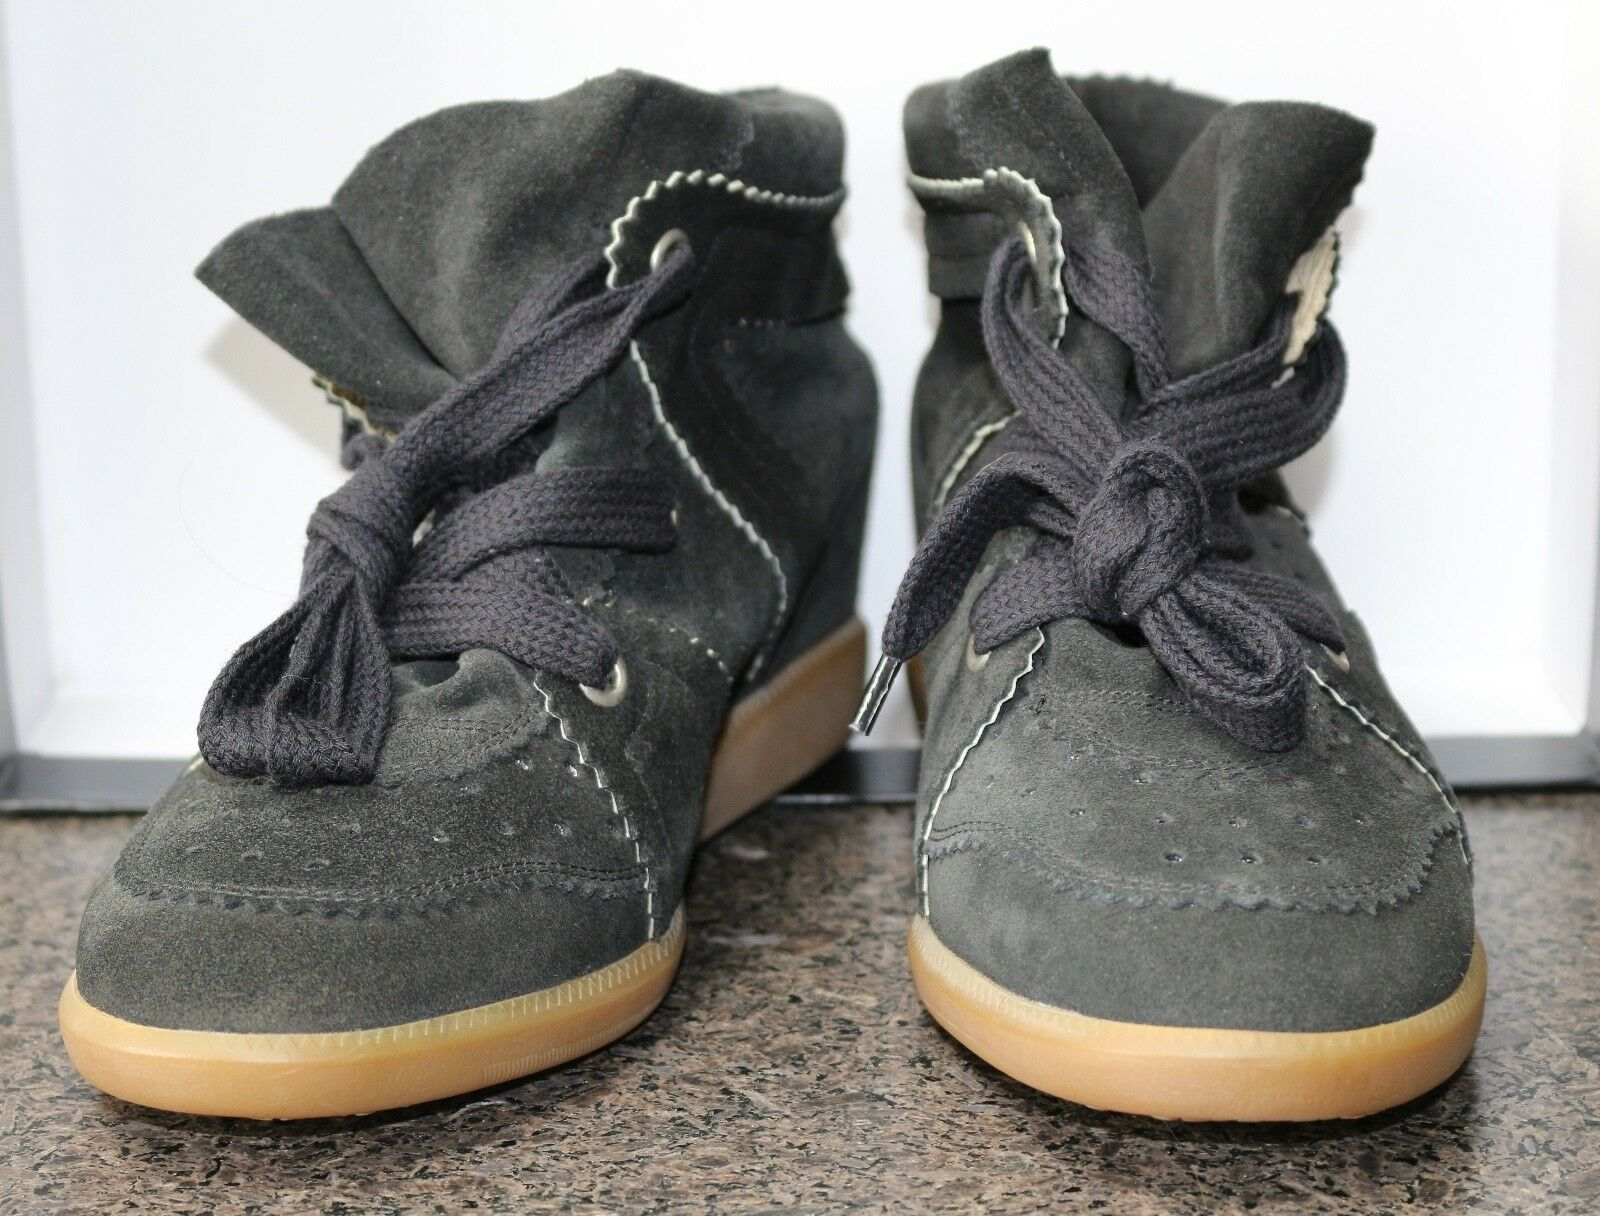 NEW donna ISABEL MARANT BLK SUEDE HIGH TOP WEDGE WEDGE WEDGE FASHION scarpe da ginnastica scarpe 39 04a08f